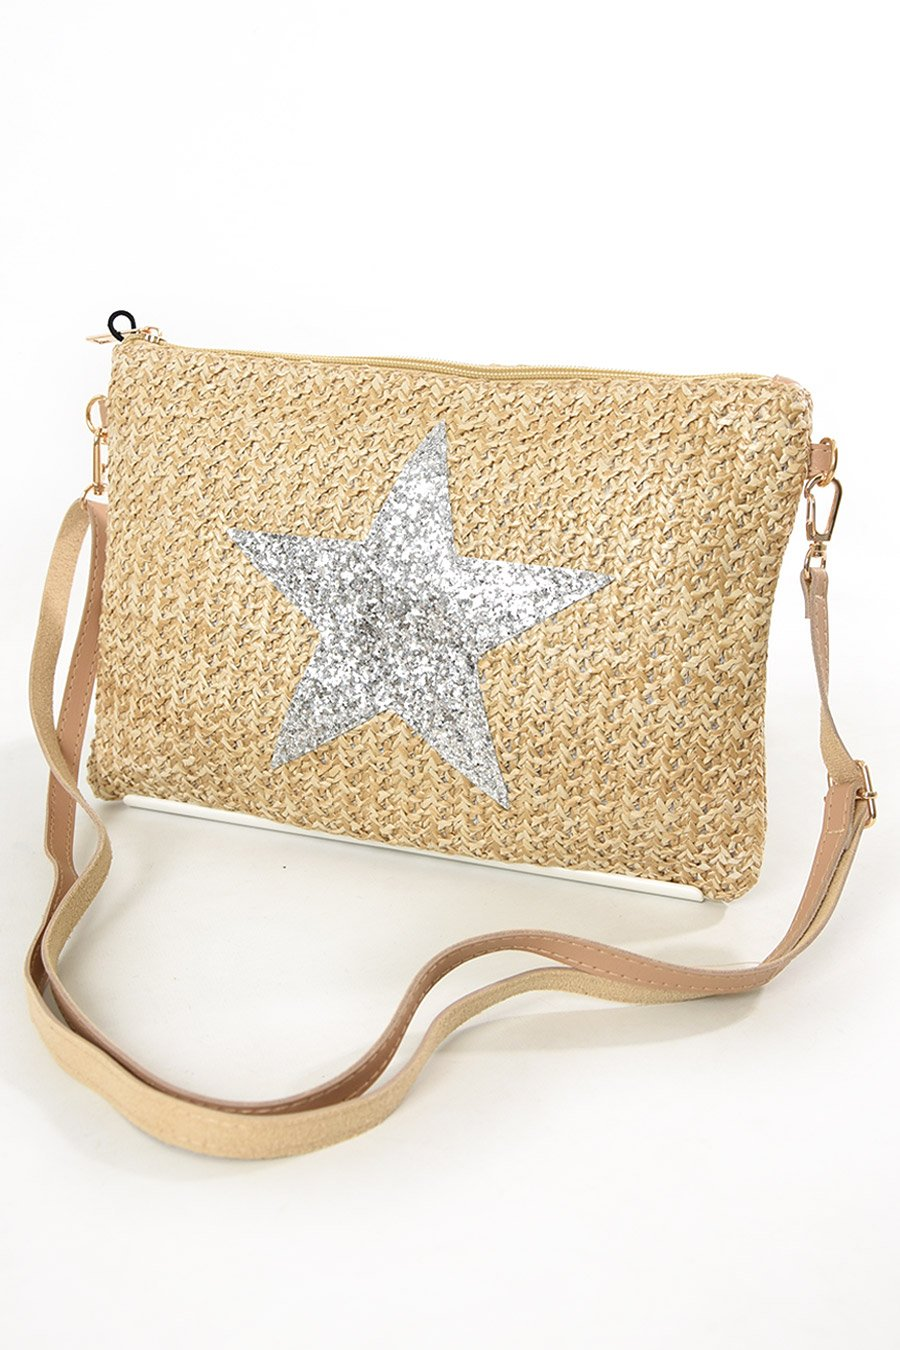 Cream & Silver Star Bag